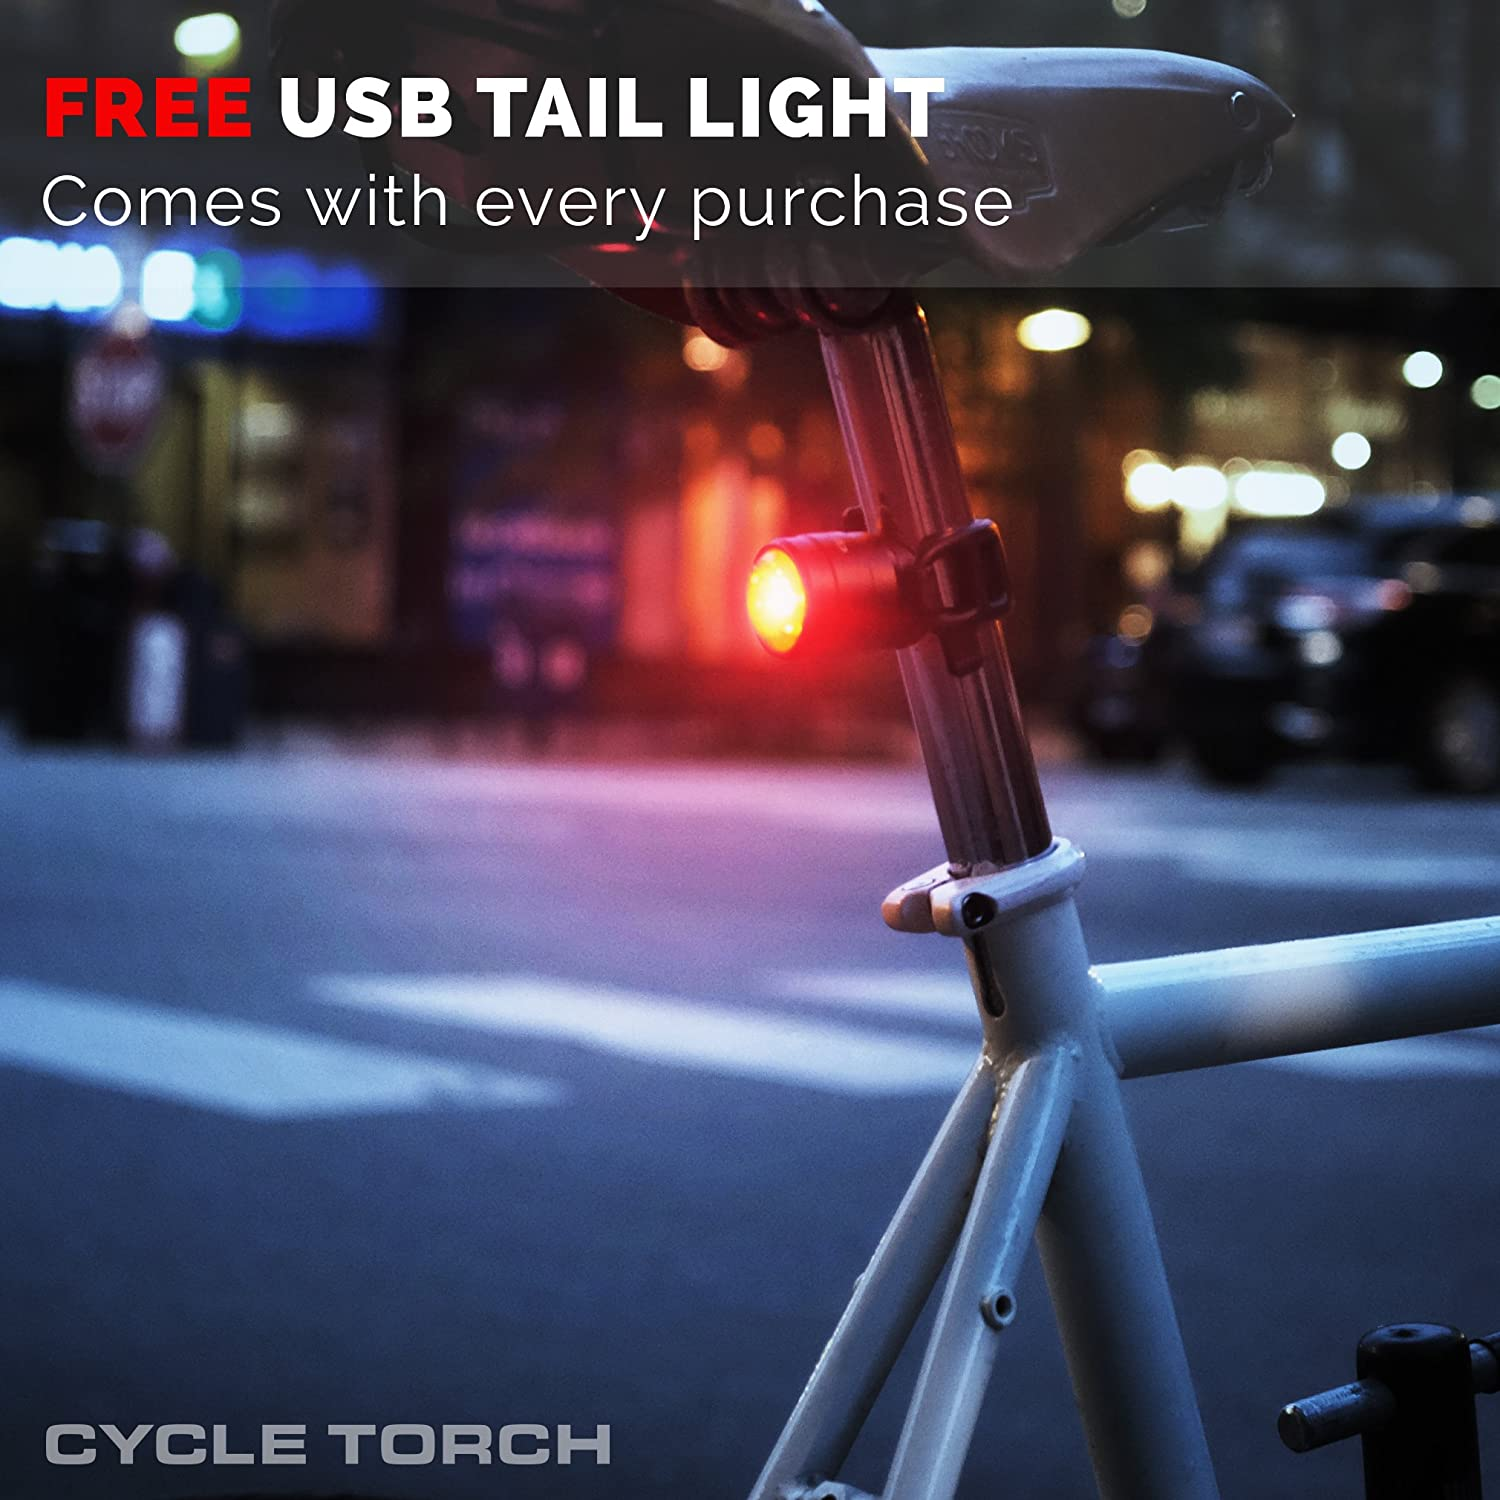 Road Easy Install /& Quick Release 500 Lumens Hybrid FREE Taillight INCLUDED- Cycle Torch Shark 500 Set Black SUPERBRIGHT Bike Light USB Rechargeable LED Fits ALL Bikes MTB